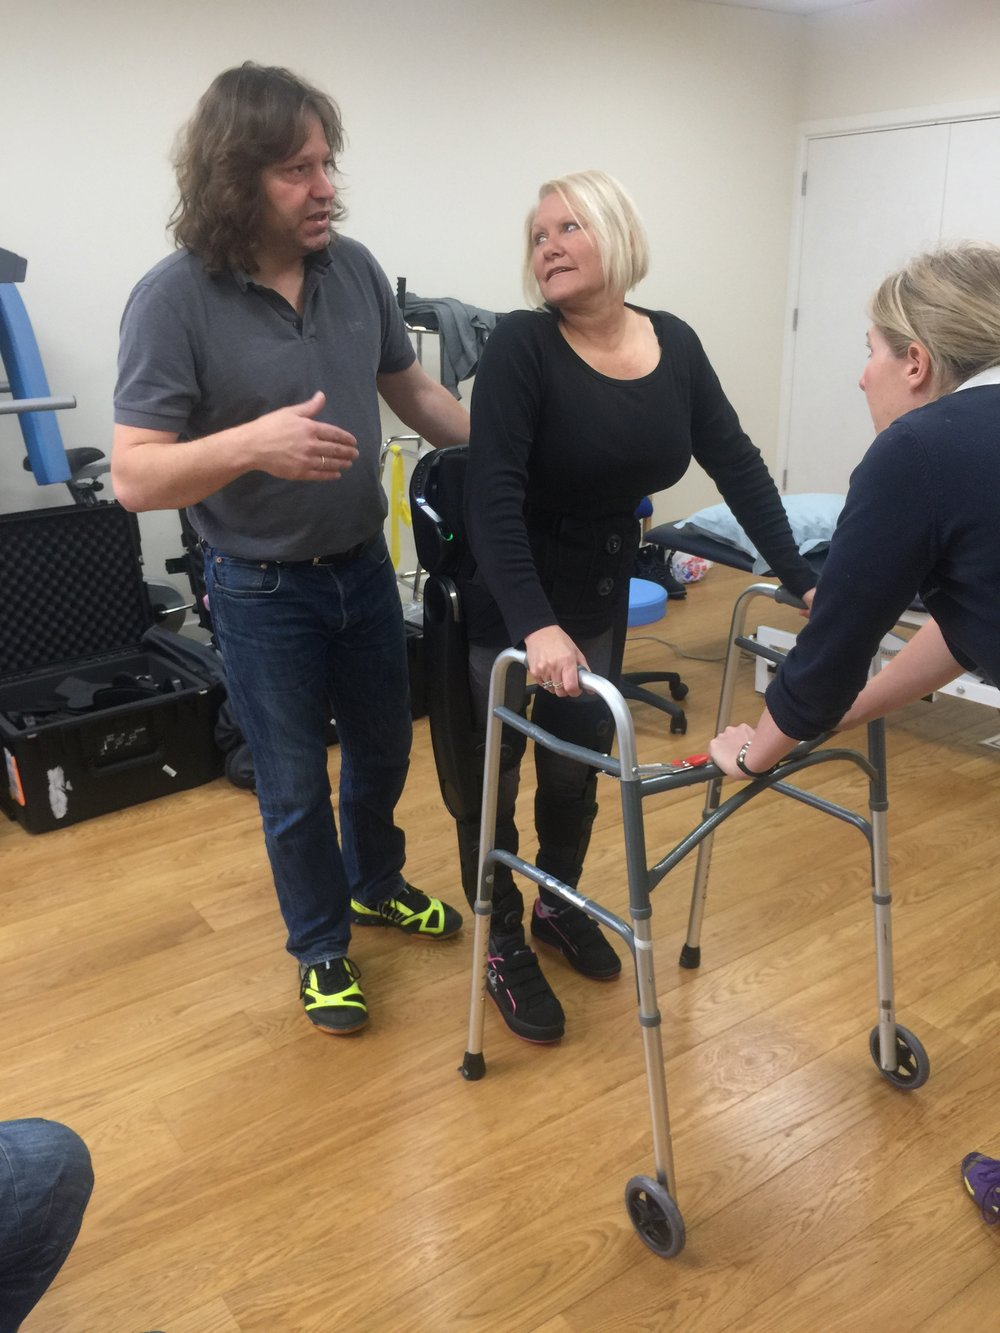 First steps with the Indego at More Rehab in Doncaster